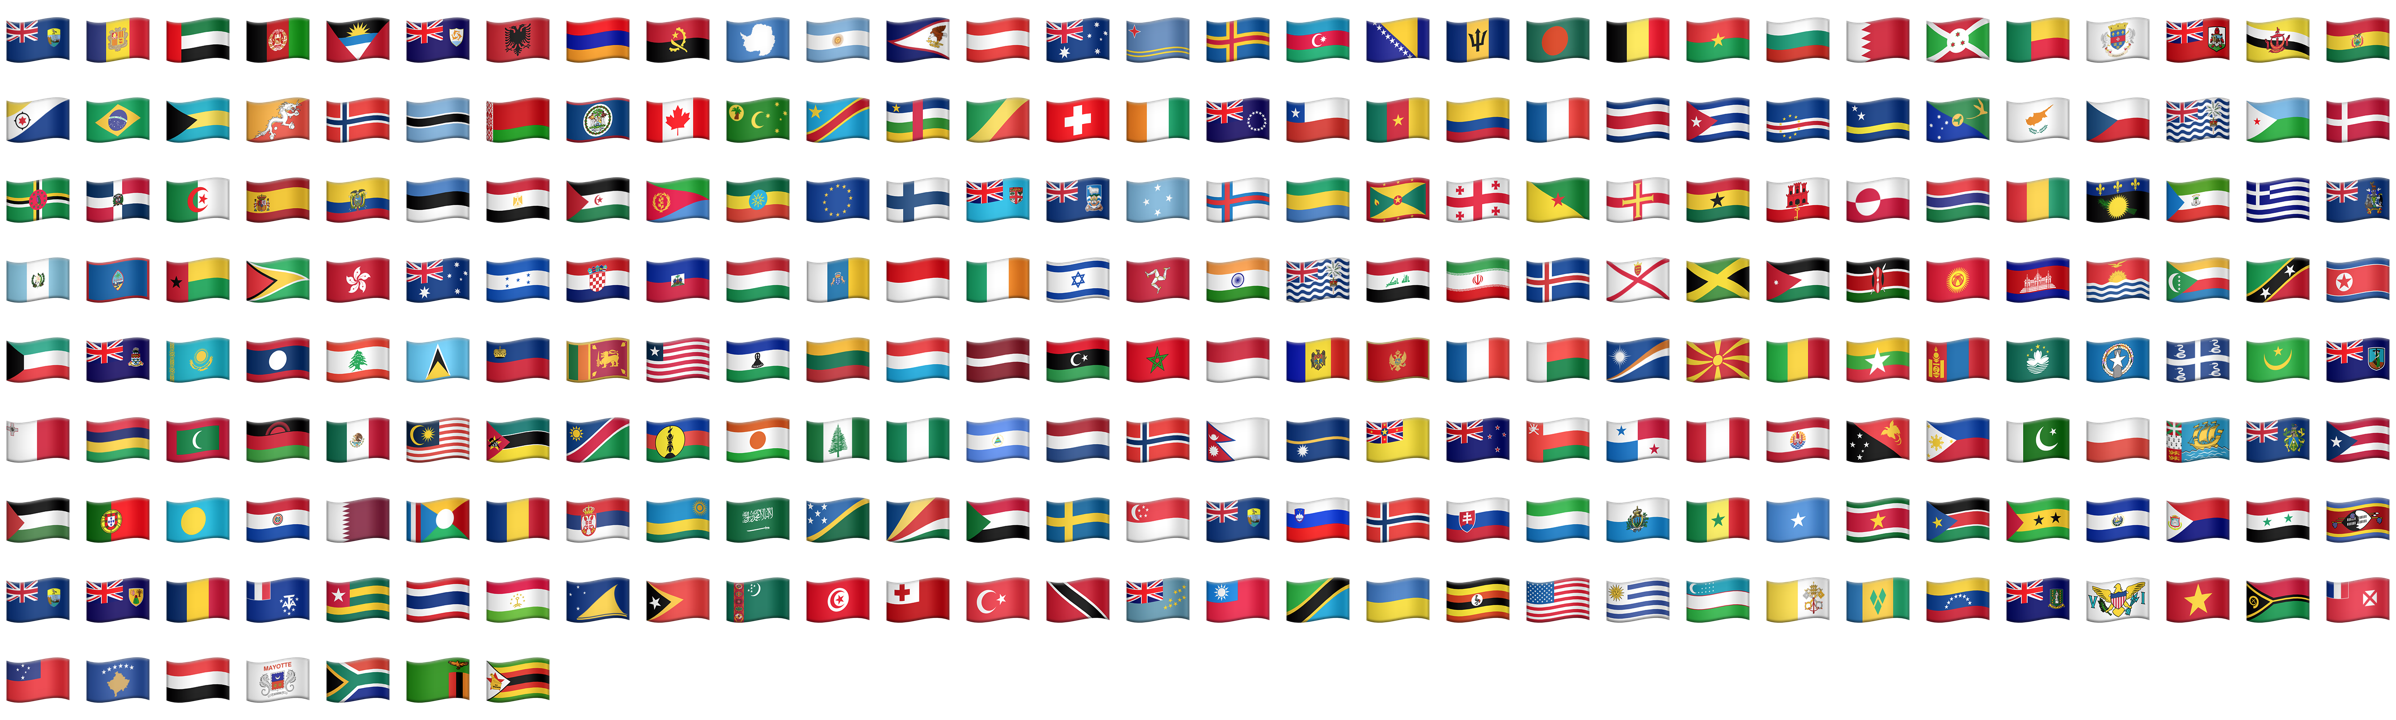 Utr 51 unicode emoji some of these flags use the same glyphs for more about flags nvjuhfo Images